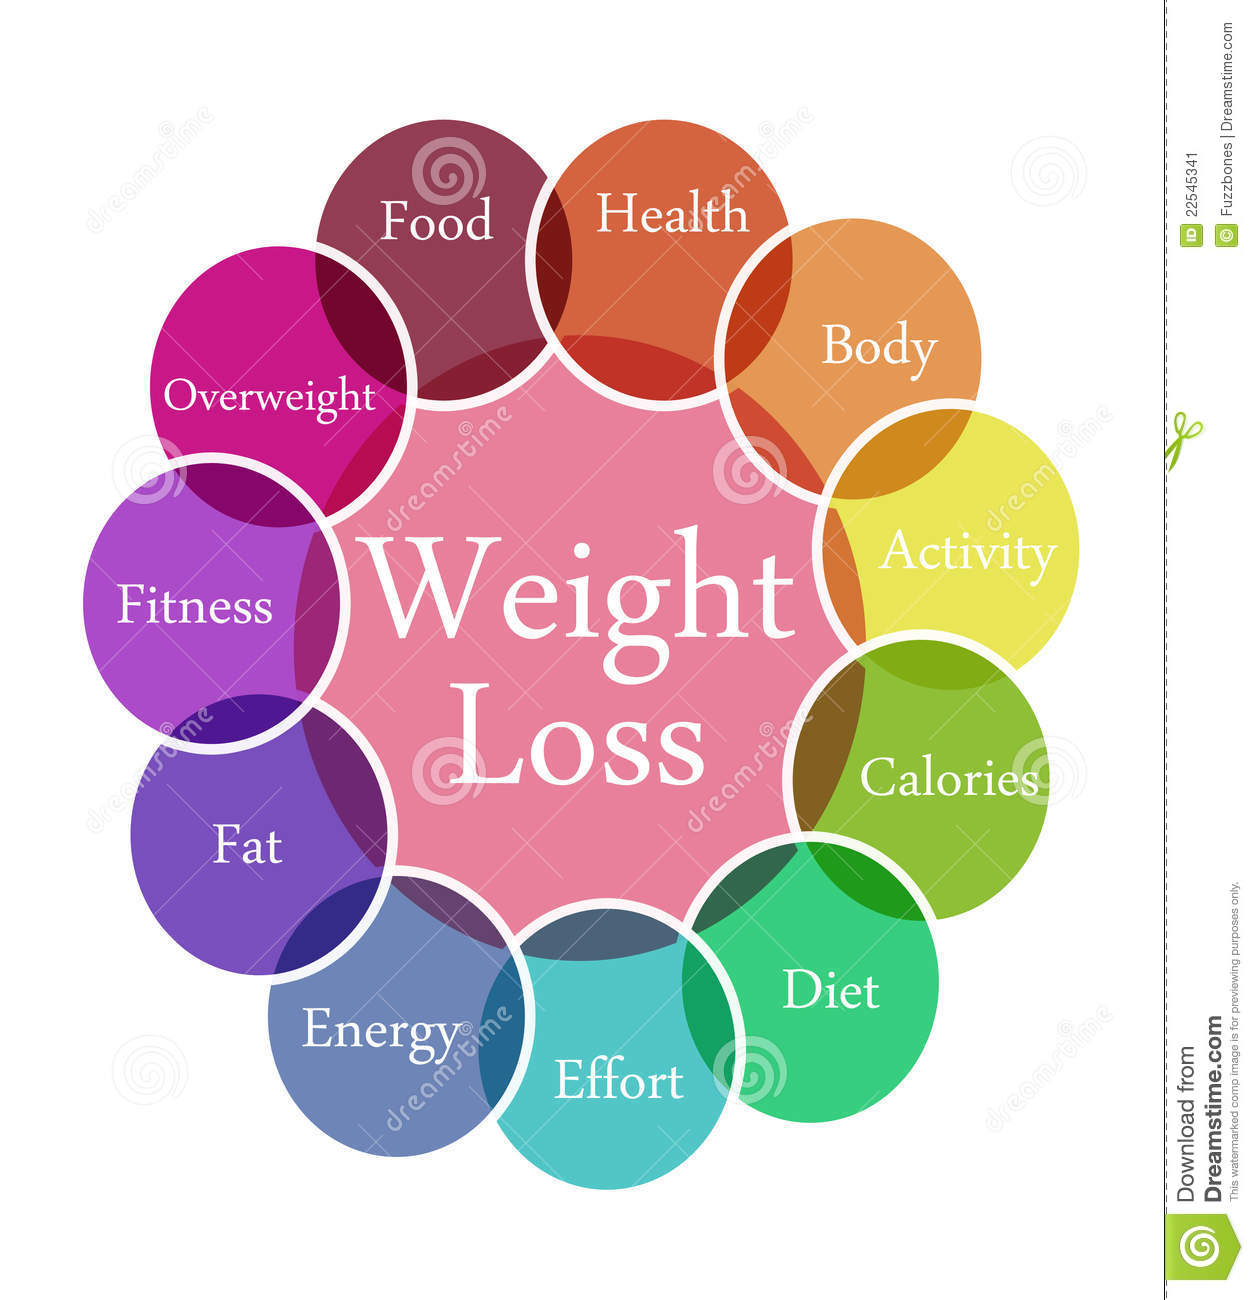 Weight Loss Illustration Stock Image - Image: 22545341